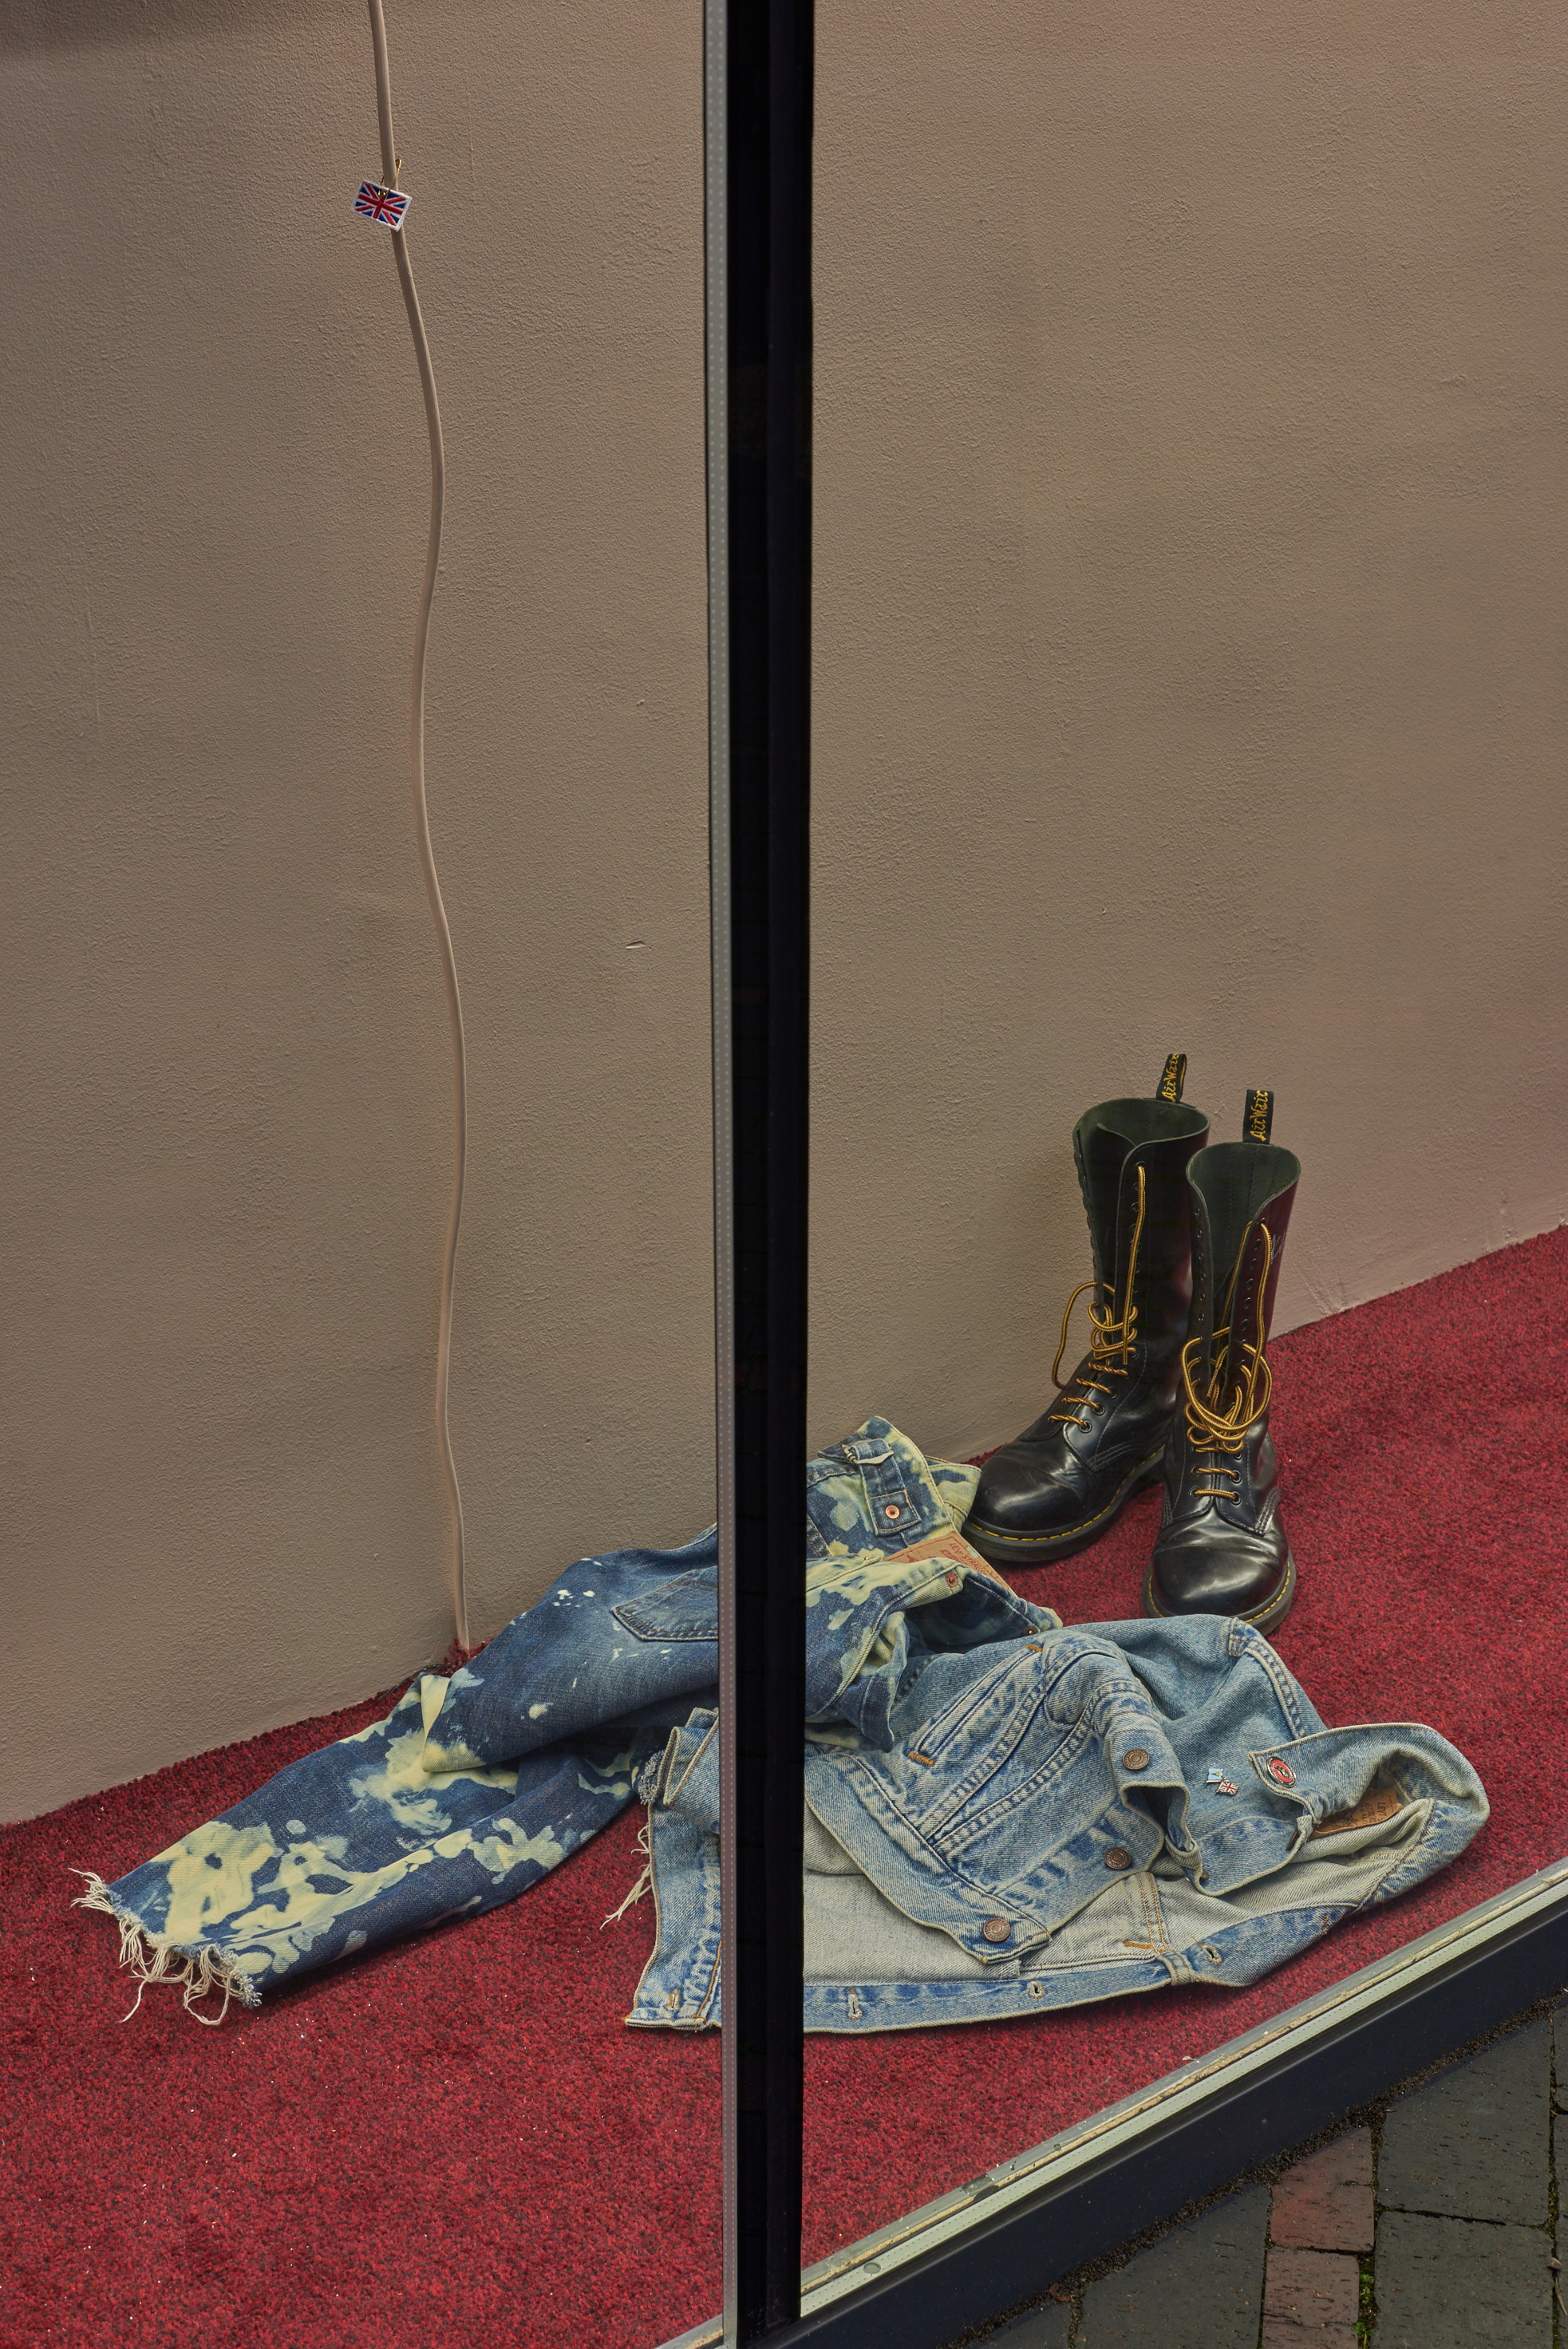 Rene Matić, Muddy Puddle, 2020. House-hold paint, carpet, Levi jeans, Fred Perry, Dr Martens. Dimensions variable. Photographer: Jonathon Bassett.